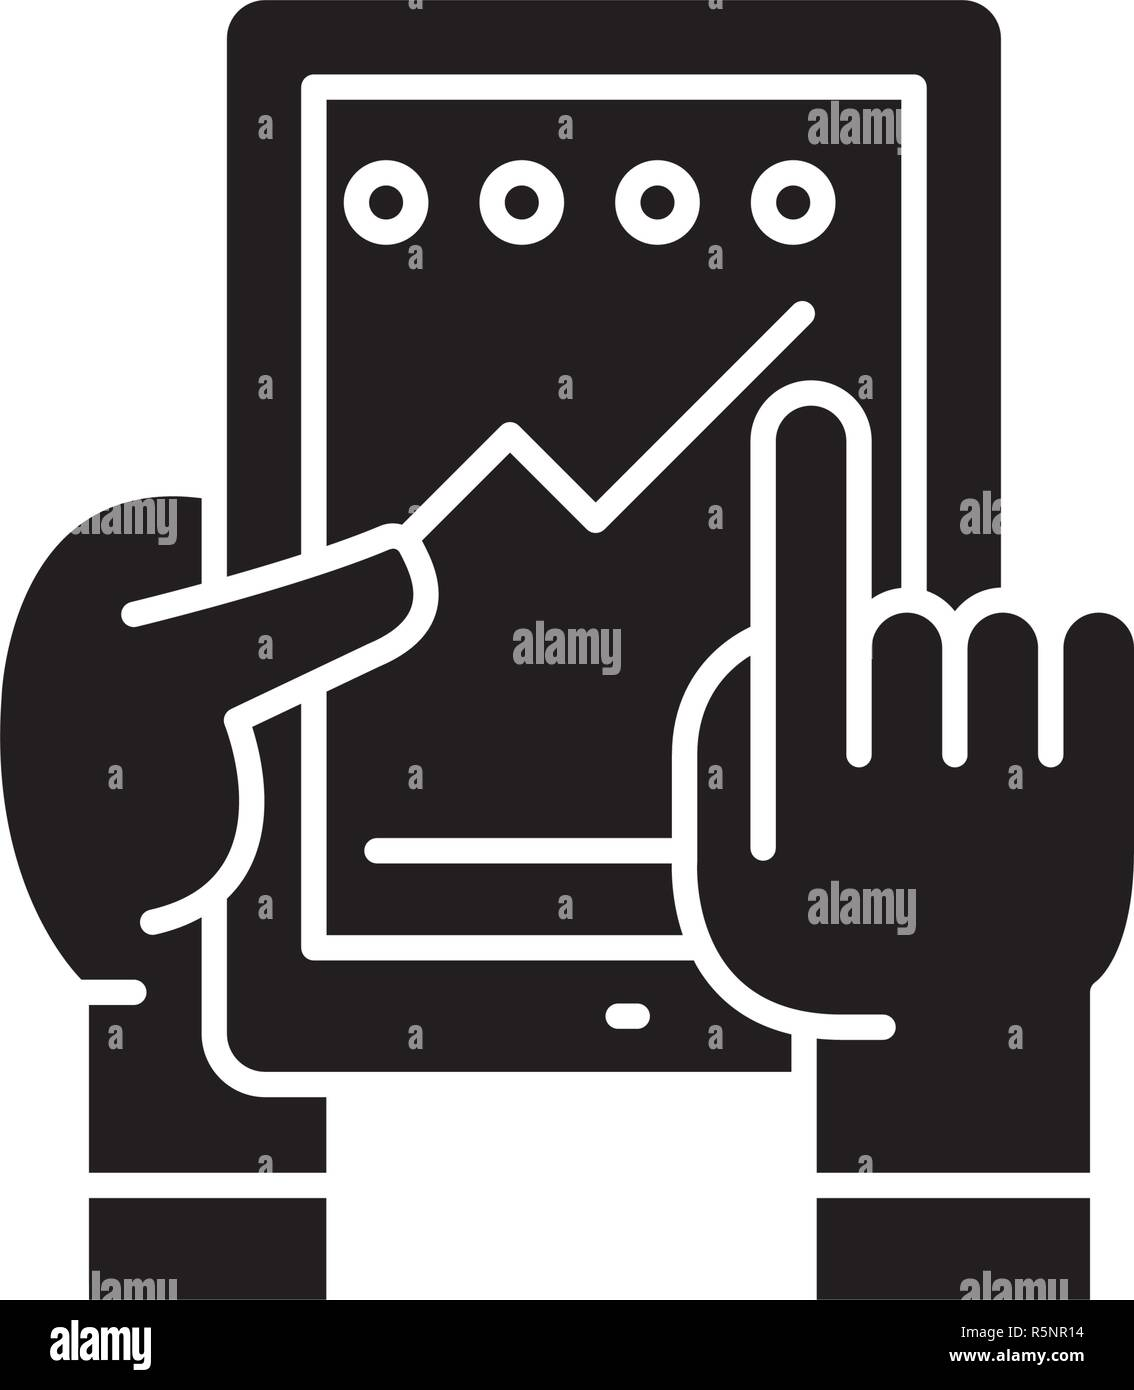 Progress in the application black icon, vector sign on isolated background. Progress in the application concept symbol, illustration  - Stock Vector